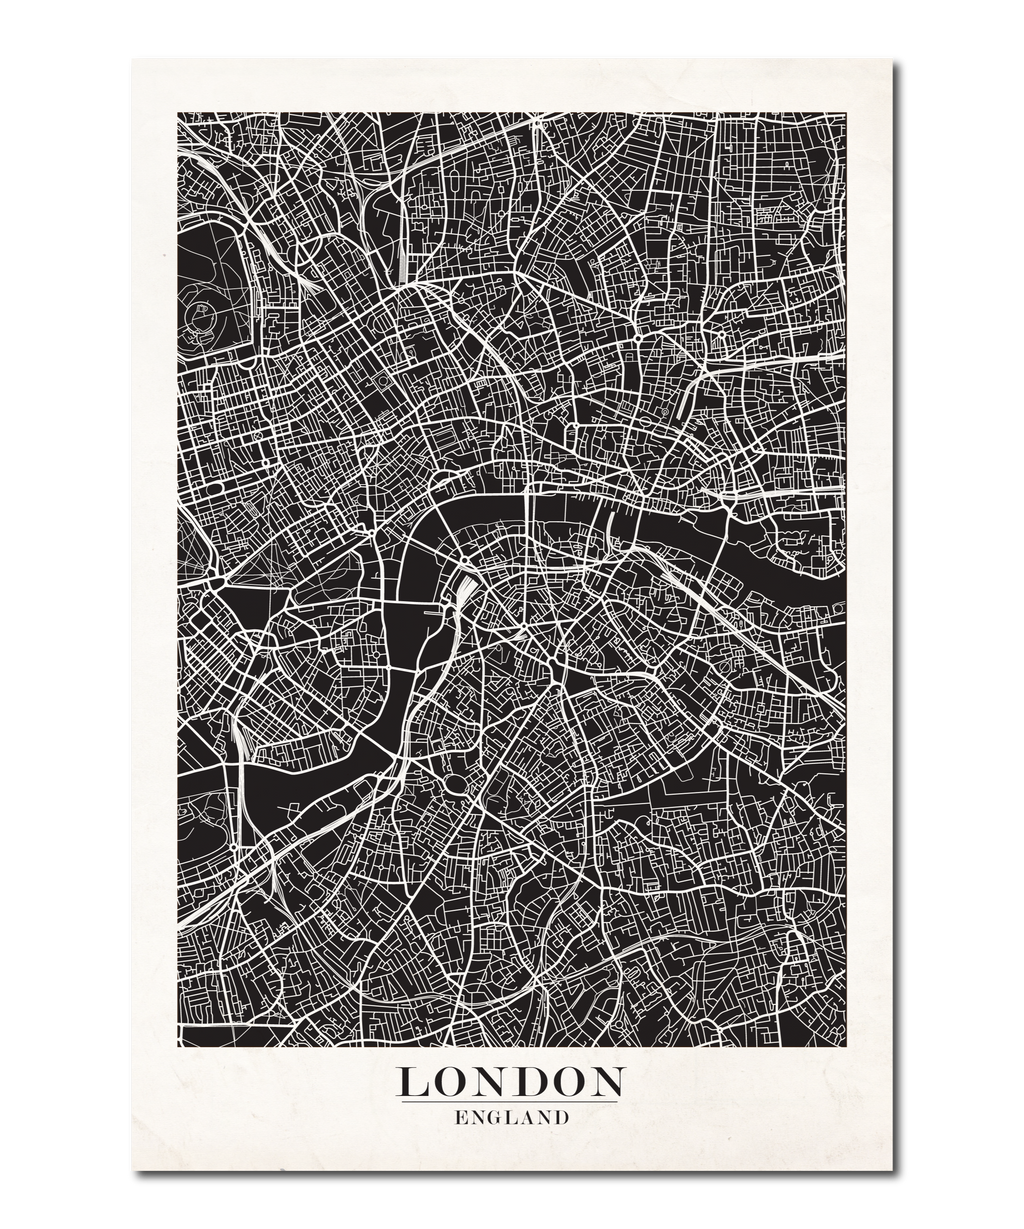 London Map Design